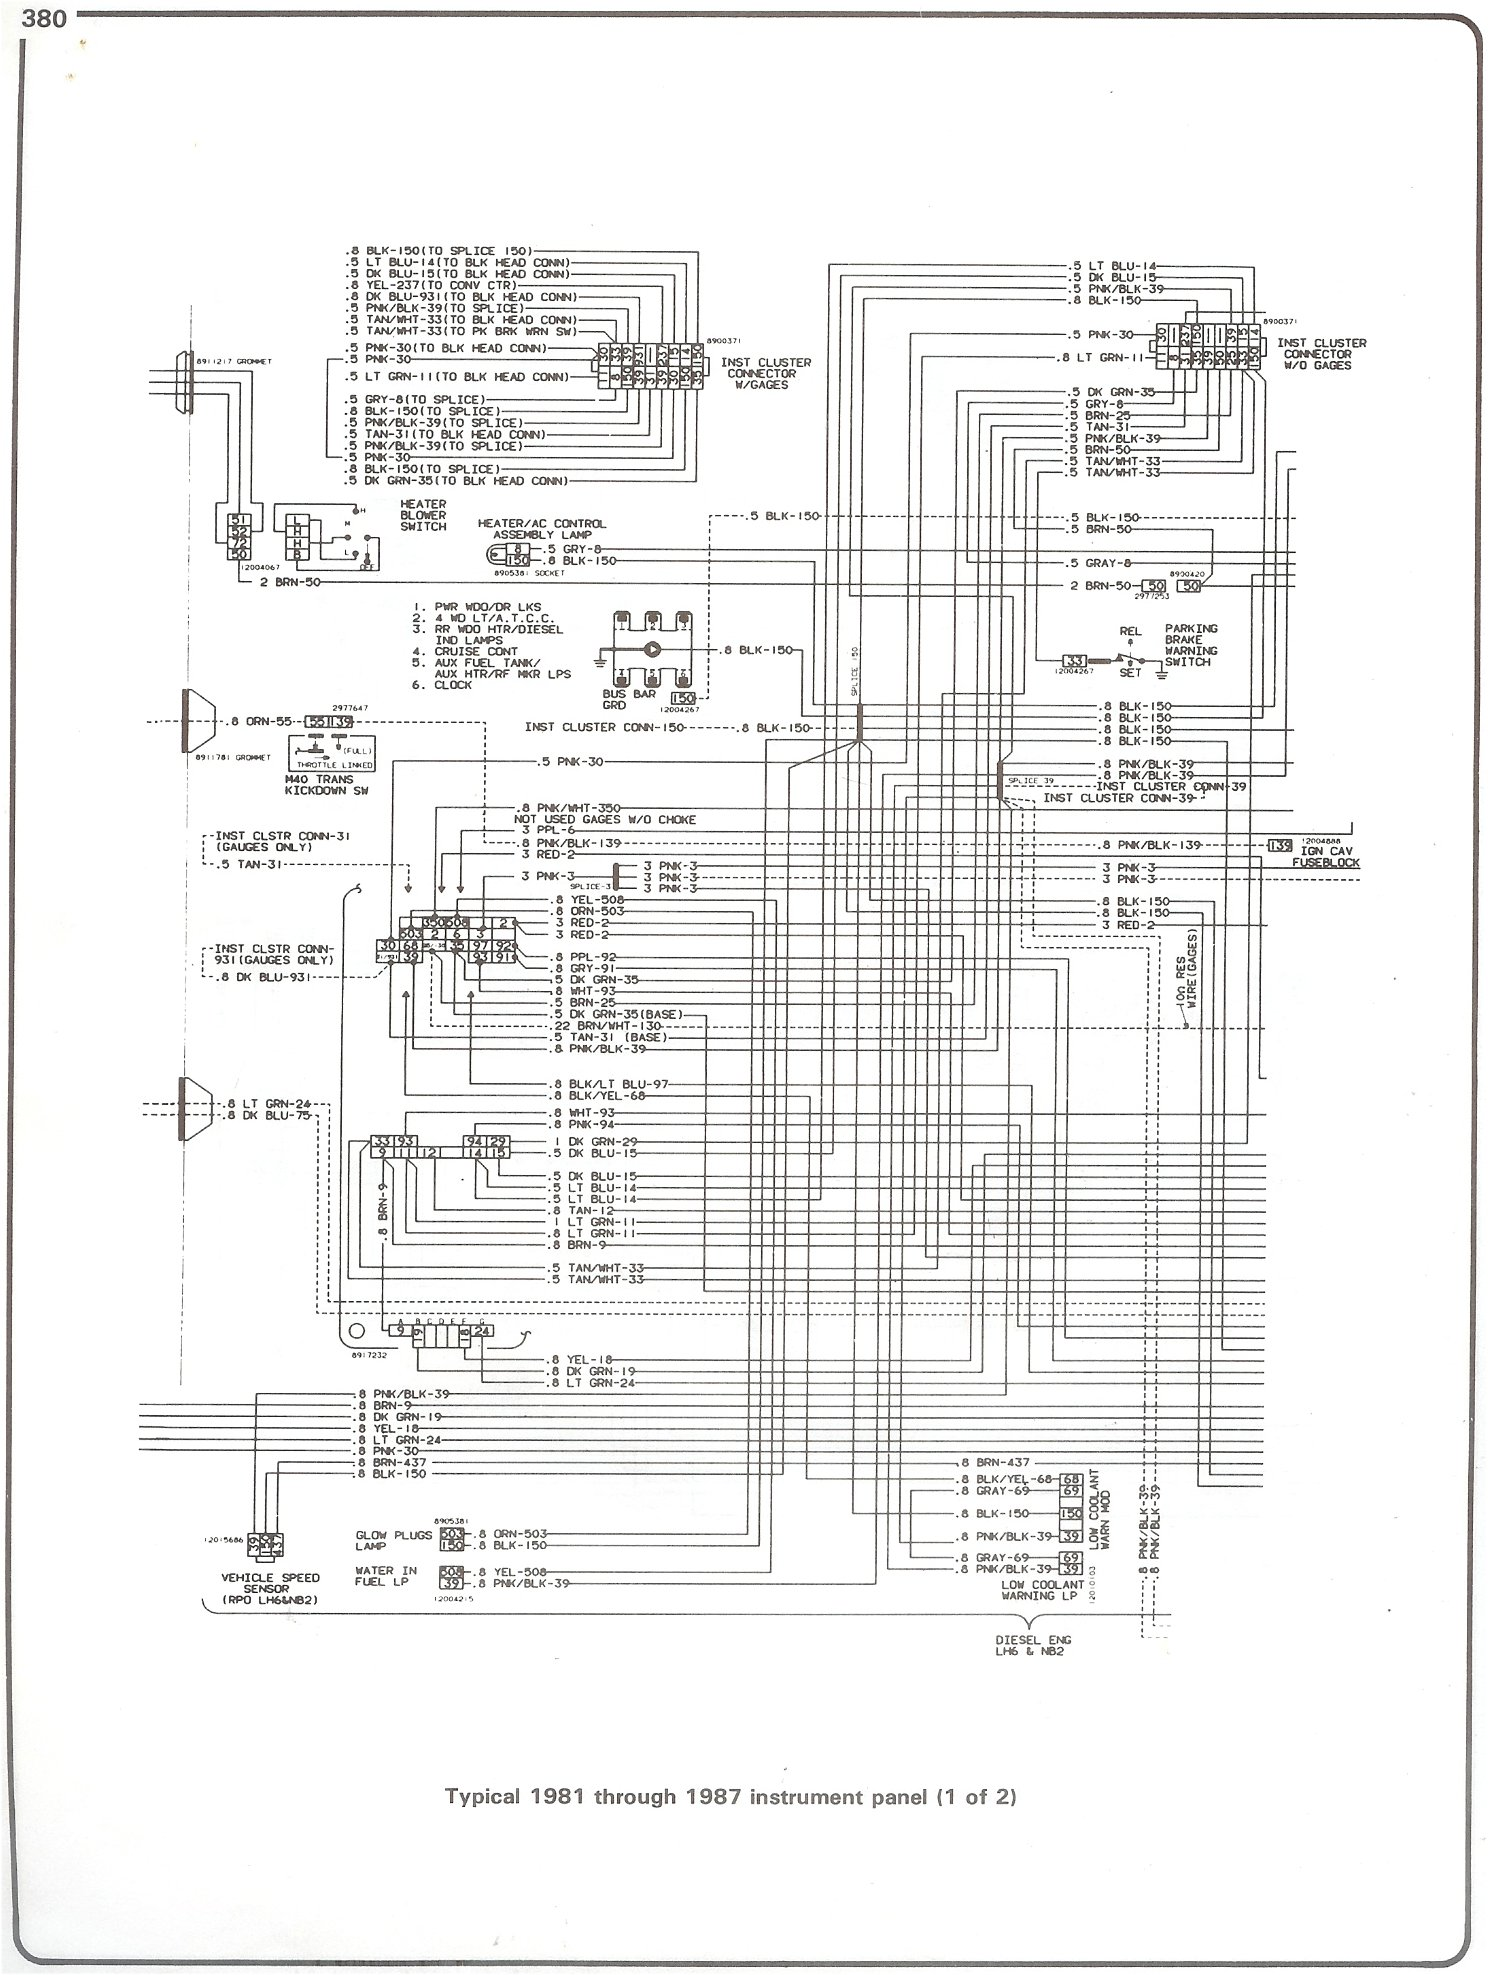 1981 gm fuse box diagram chrysler sebring l fi dohc cyl repair complete wiring diagrams 81 87 instrument panel page 1 chevy tahoe fuse